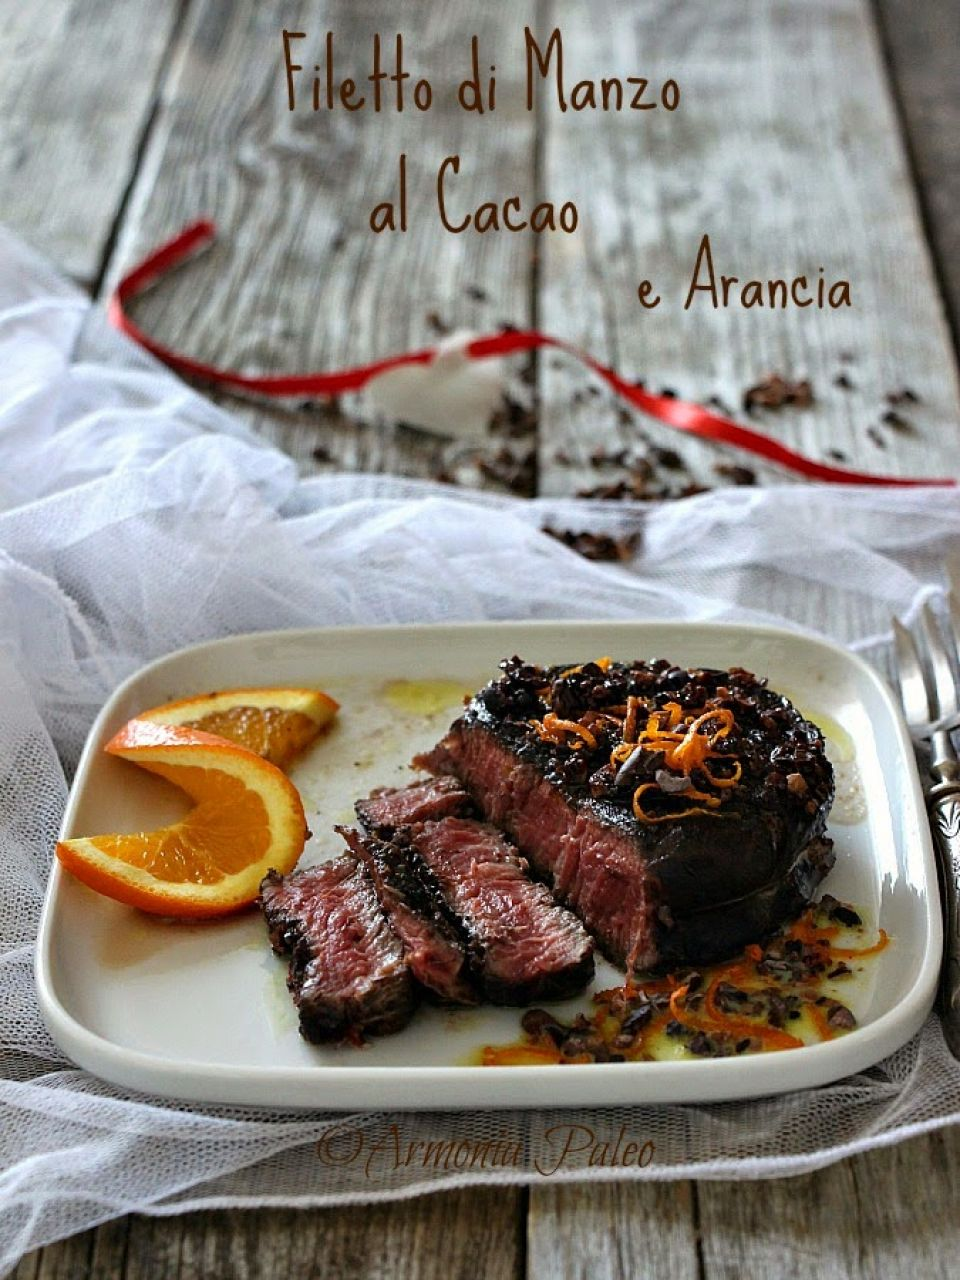 Filetto di Manzo al Cacao e Arancia